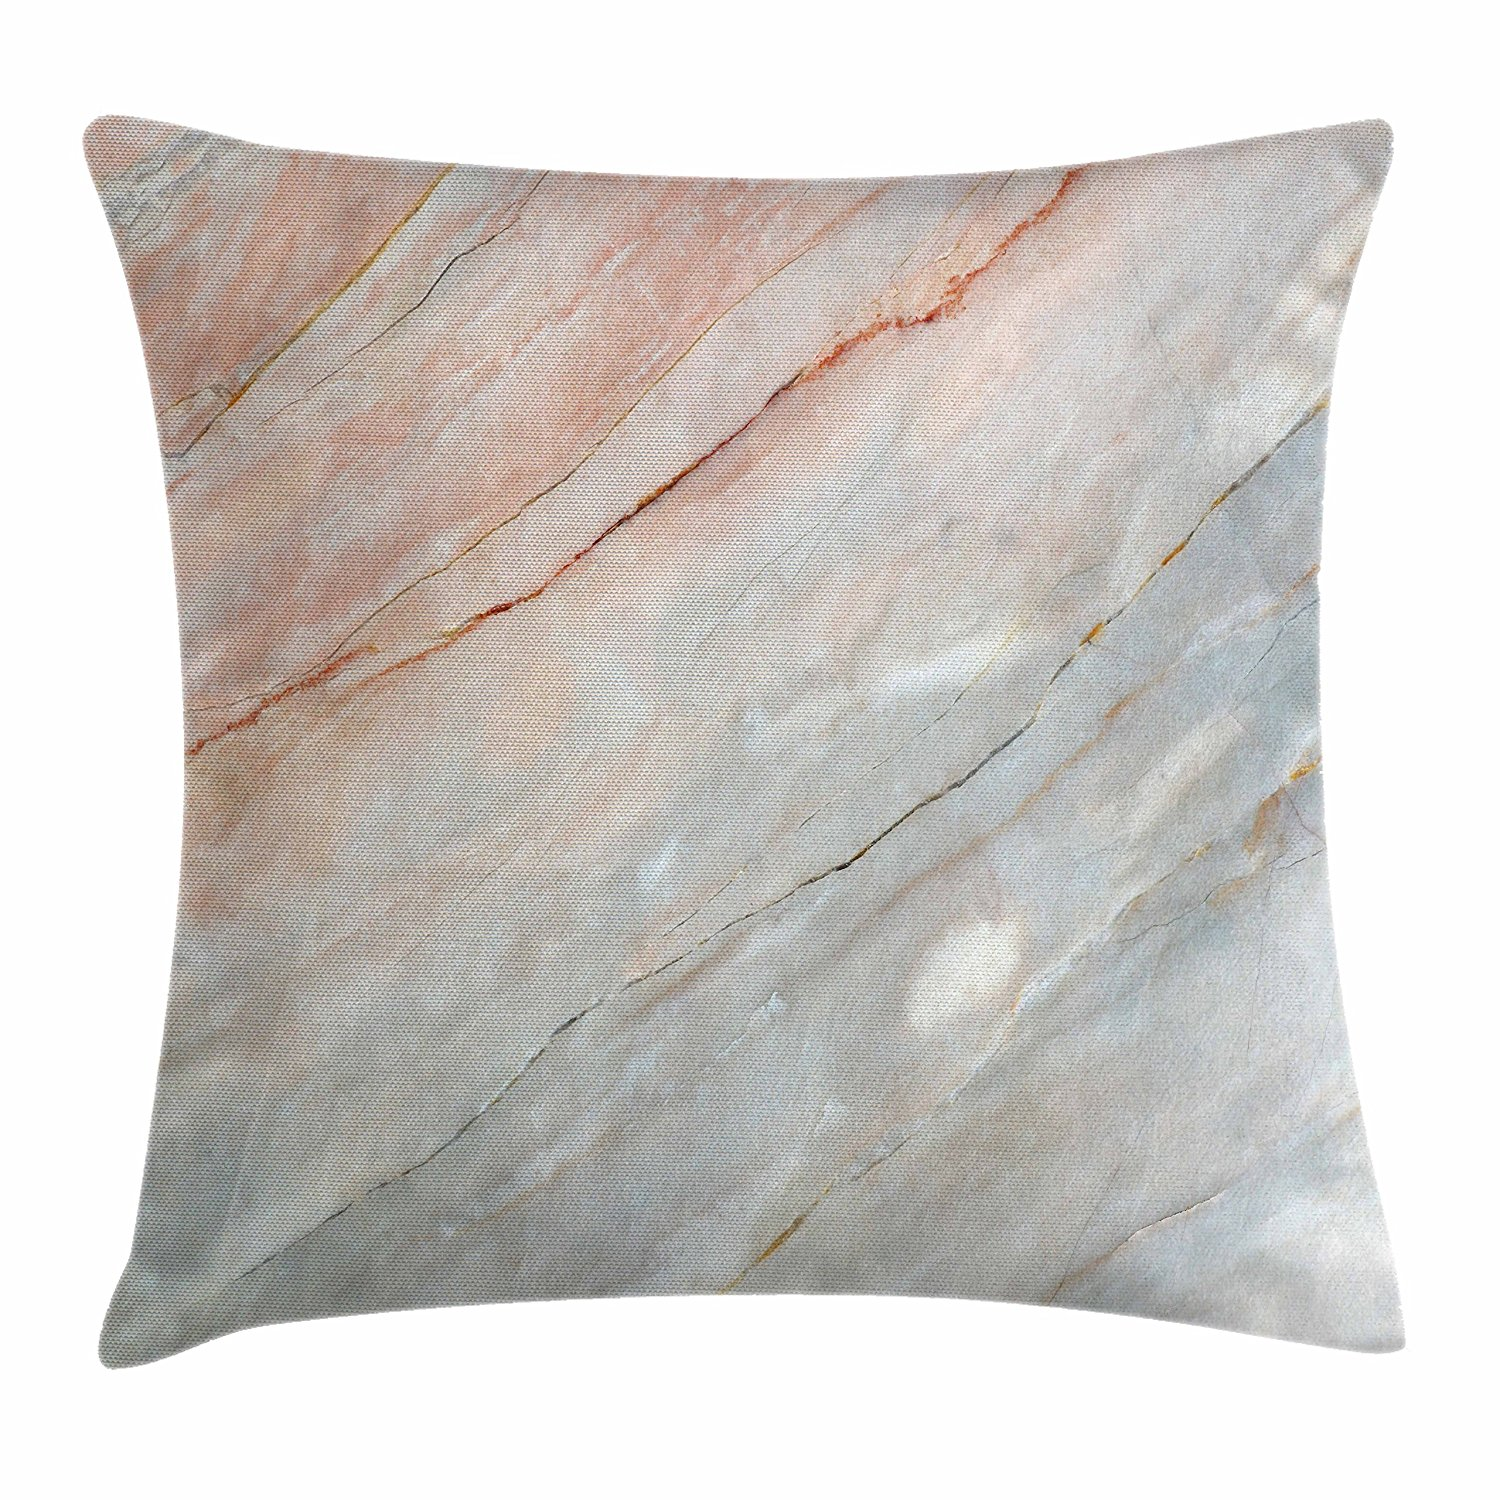 Ambesonne Marble Throw Pillow Cushion Cover, Onyx Stone Textured Natural Featured Authentic Scratches Artful Illustration, Decorative Square Accent Pillow Case, 28 X 28 Inches, Peach Pale Grey